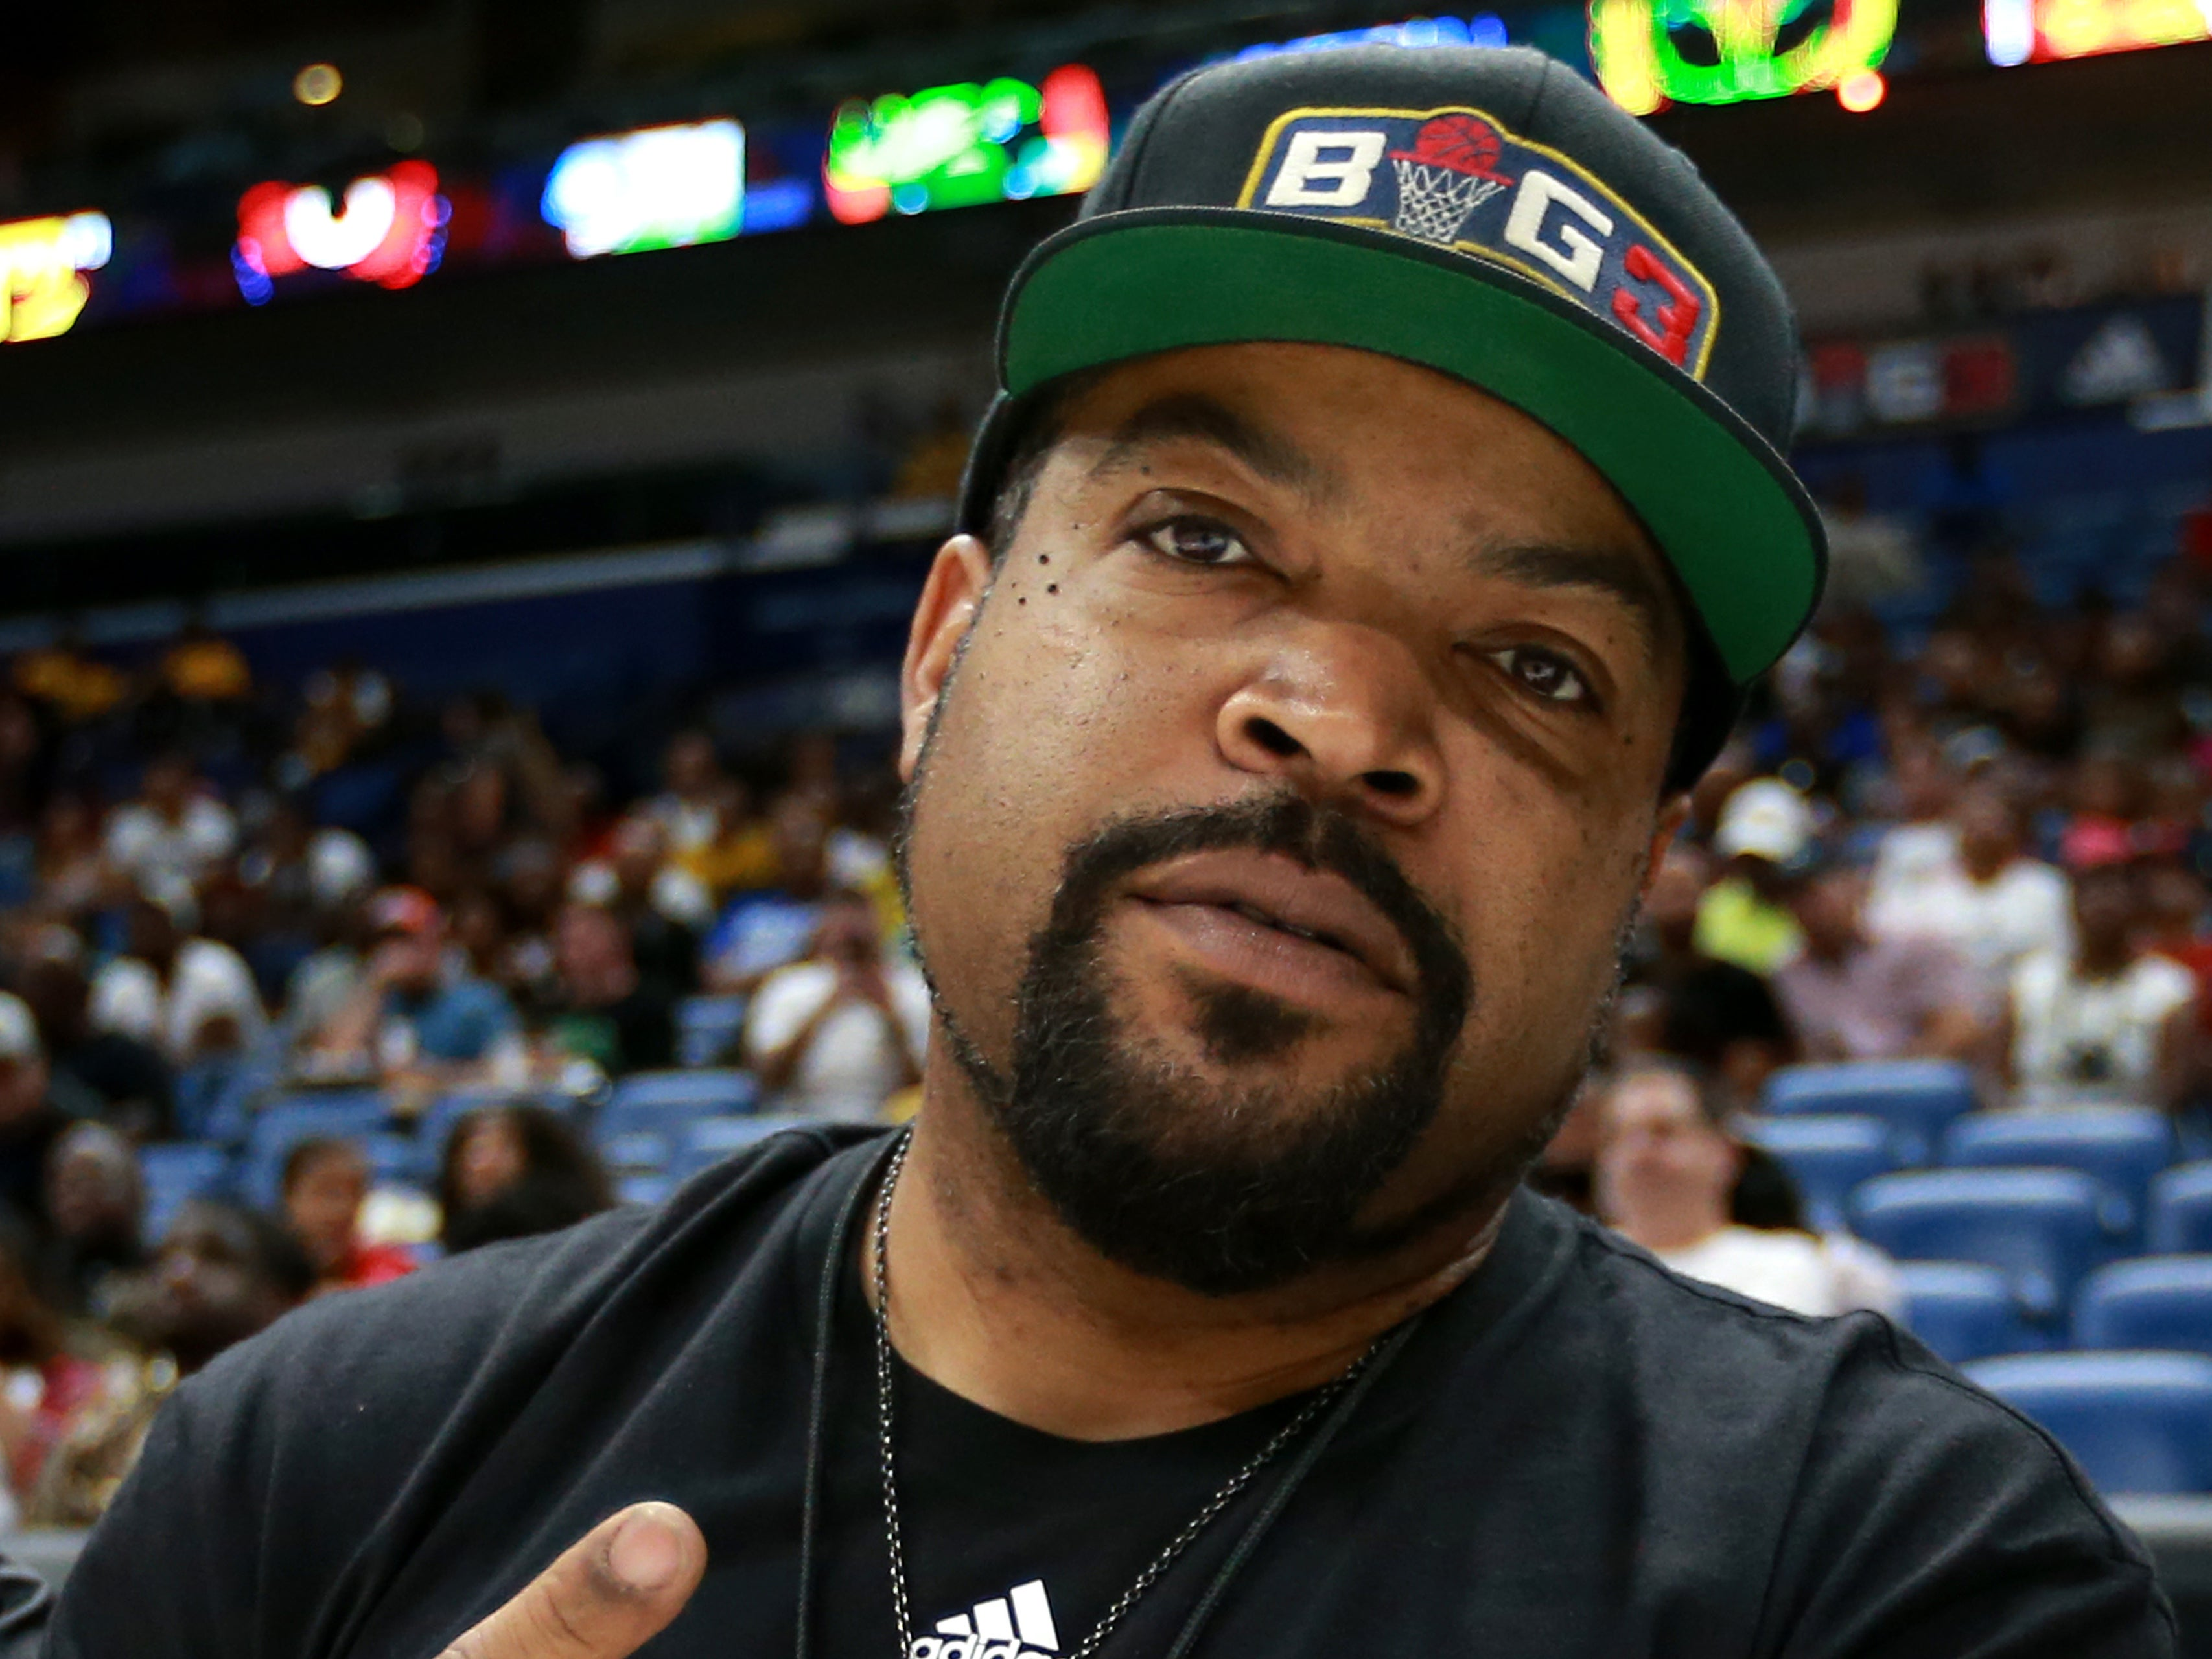 Ice Cube says Biden administration has contacted him about plan to address systemic racism